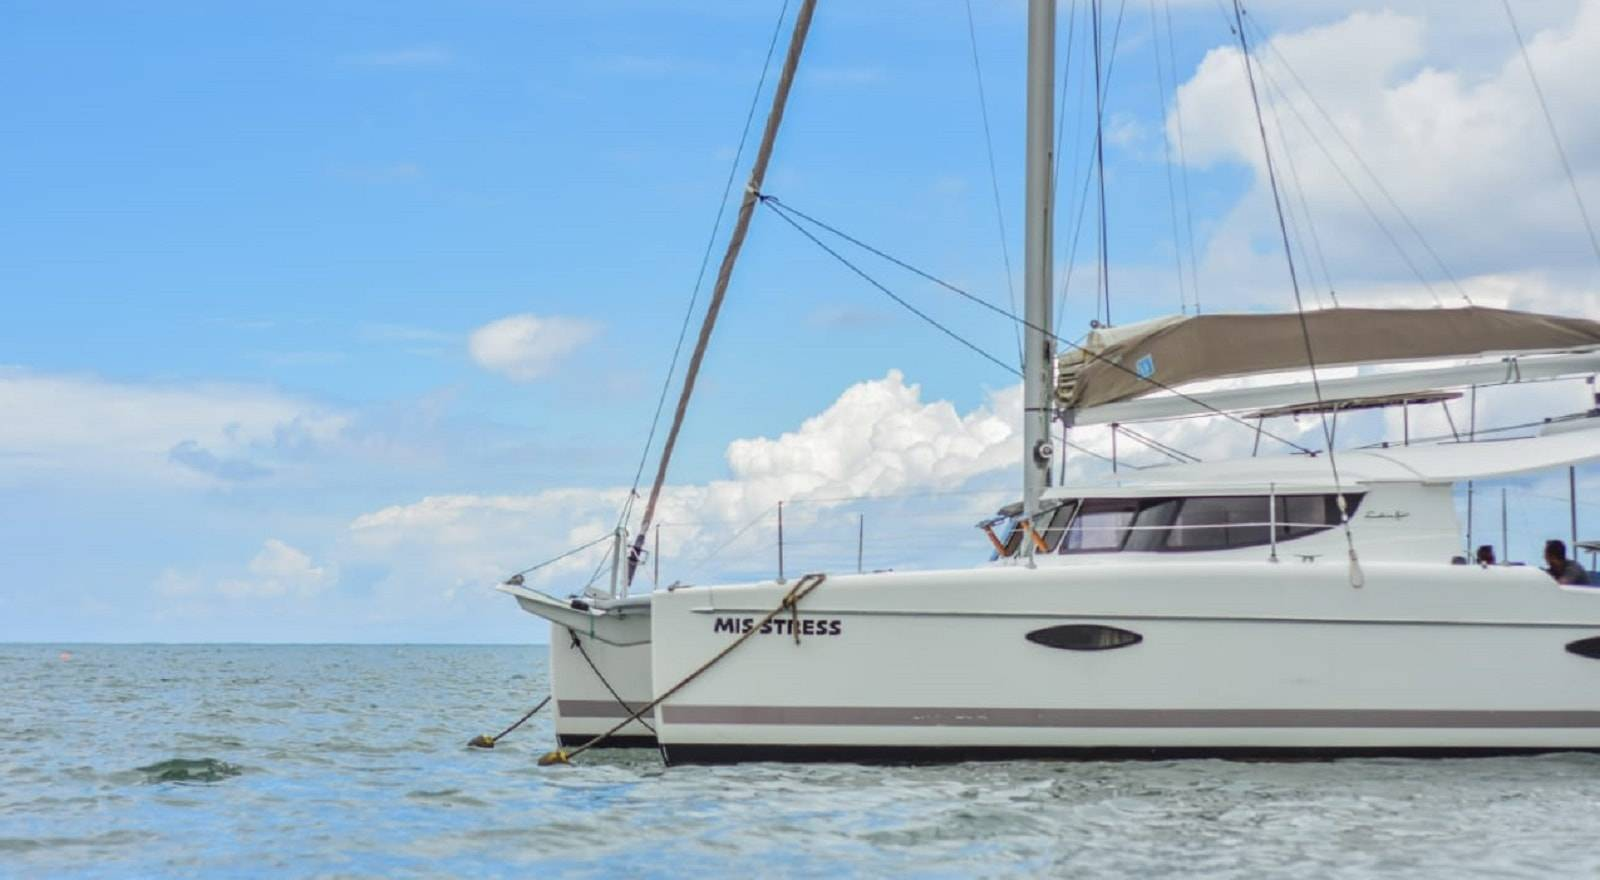 Private Full Day Catamaran Cruise, Private Full Day Catamaran Cruise, Private Full Day Catamaran Cruise